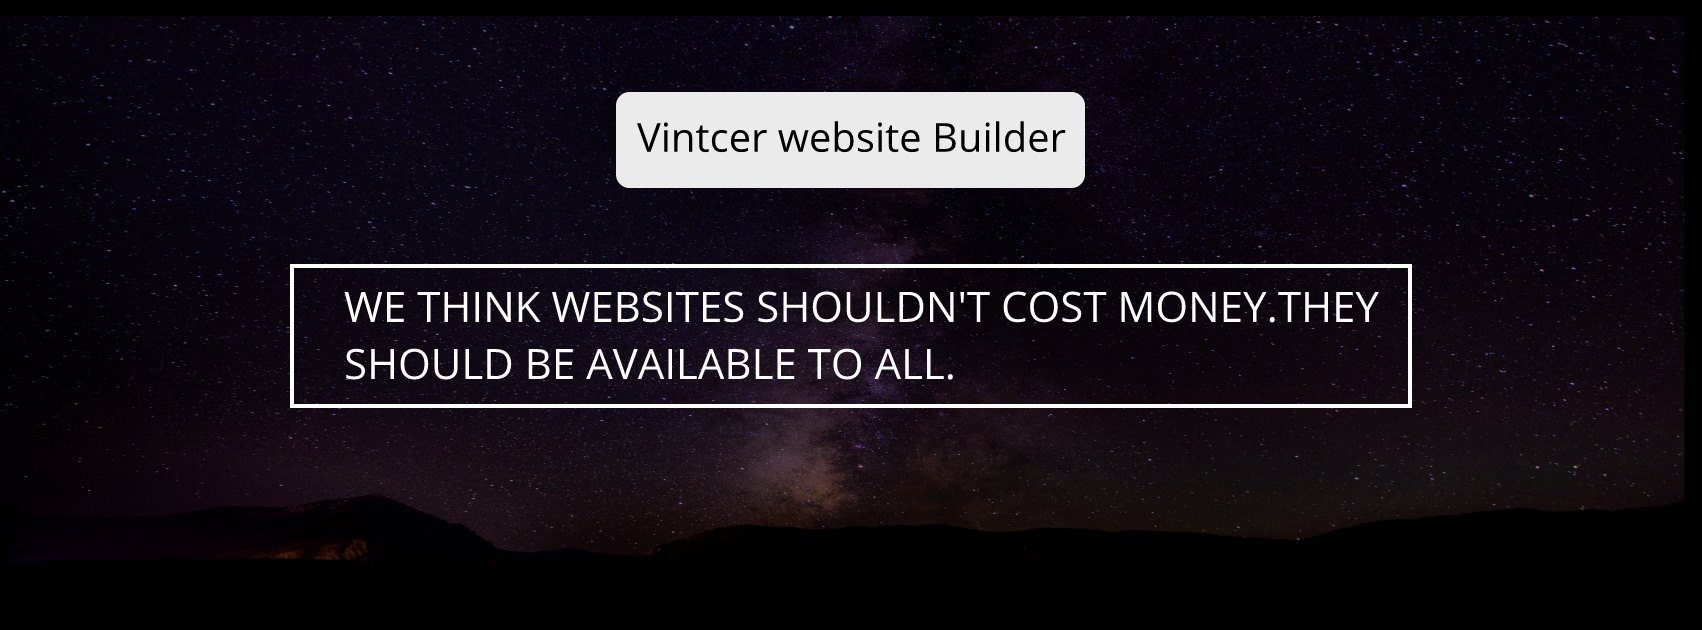 Is there a free website builder that allows you to use your